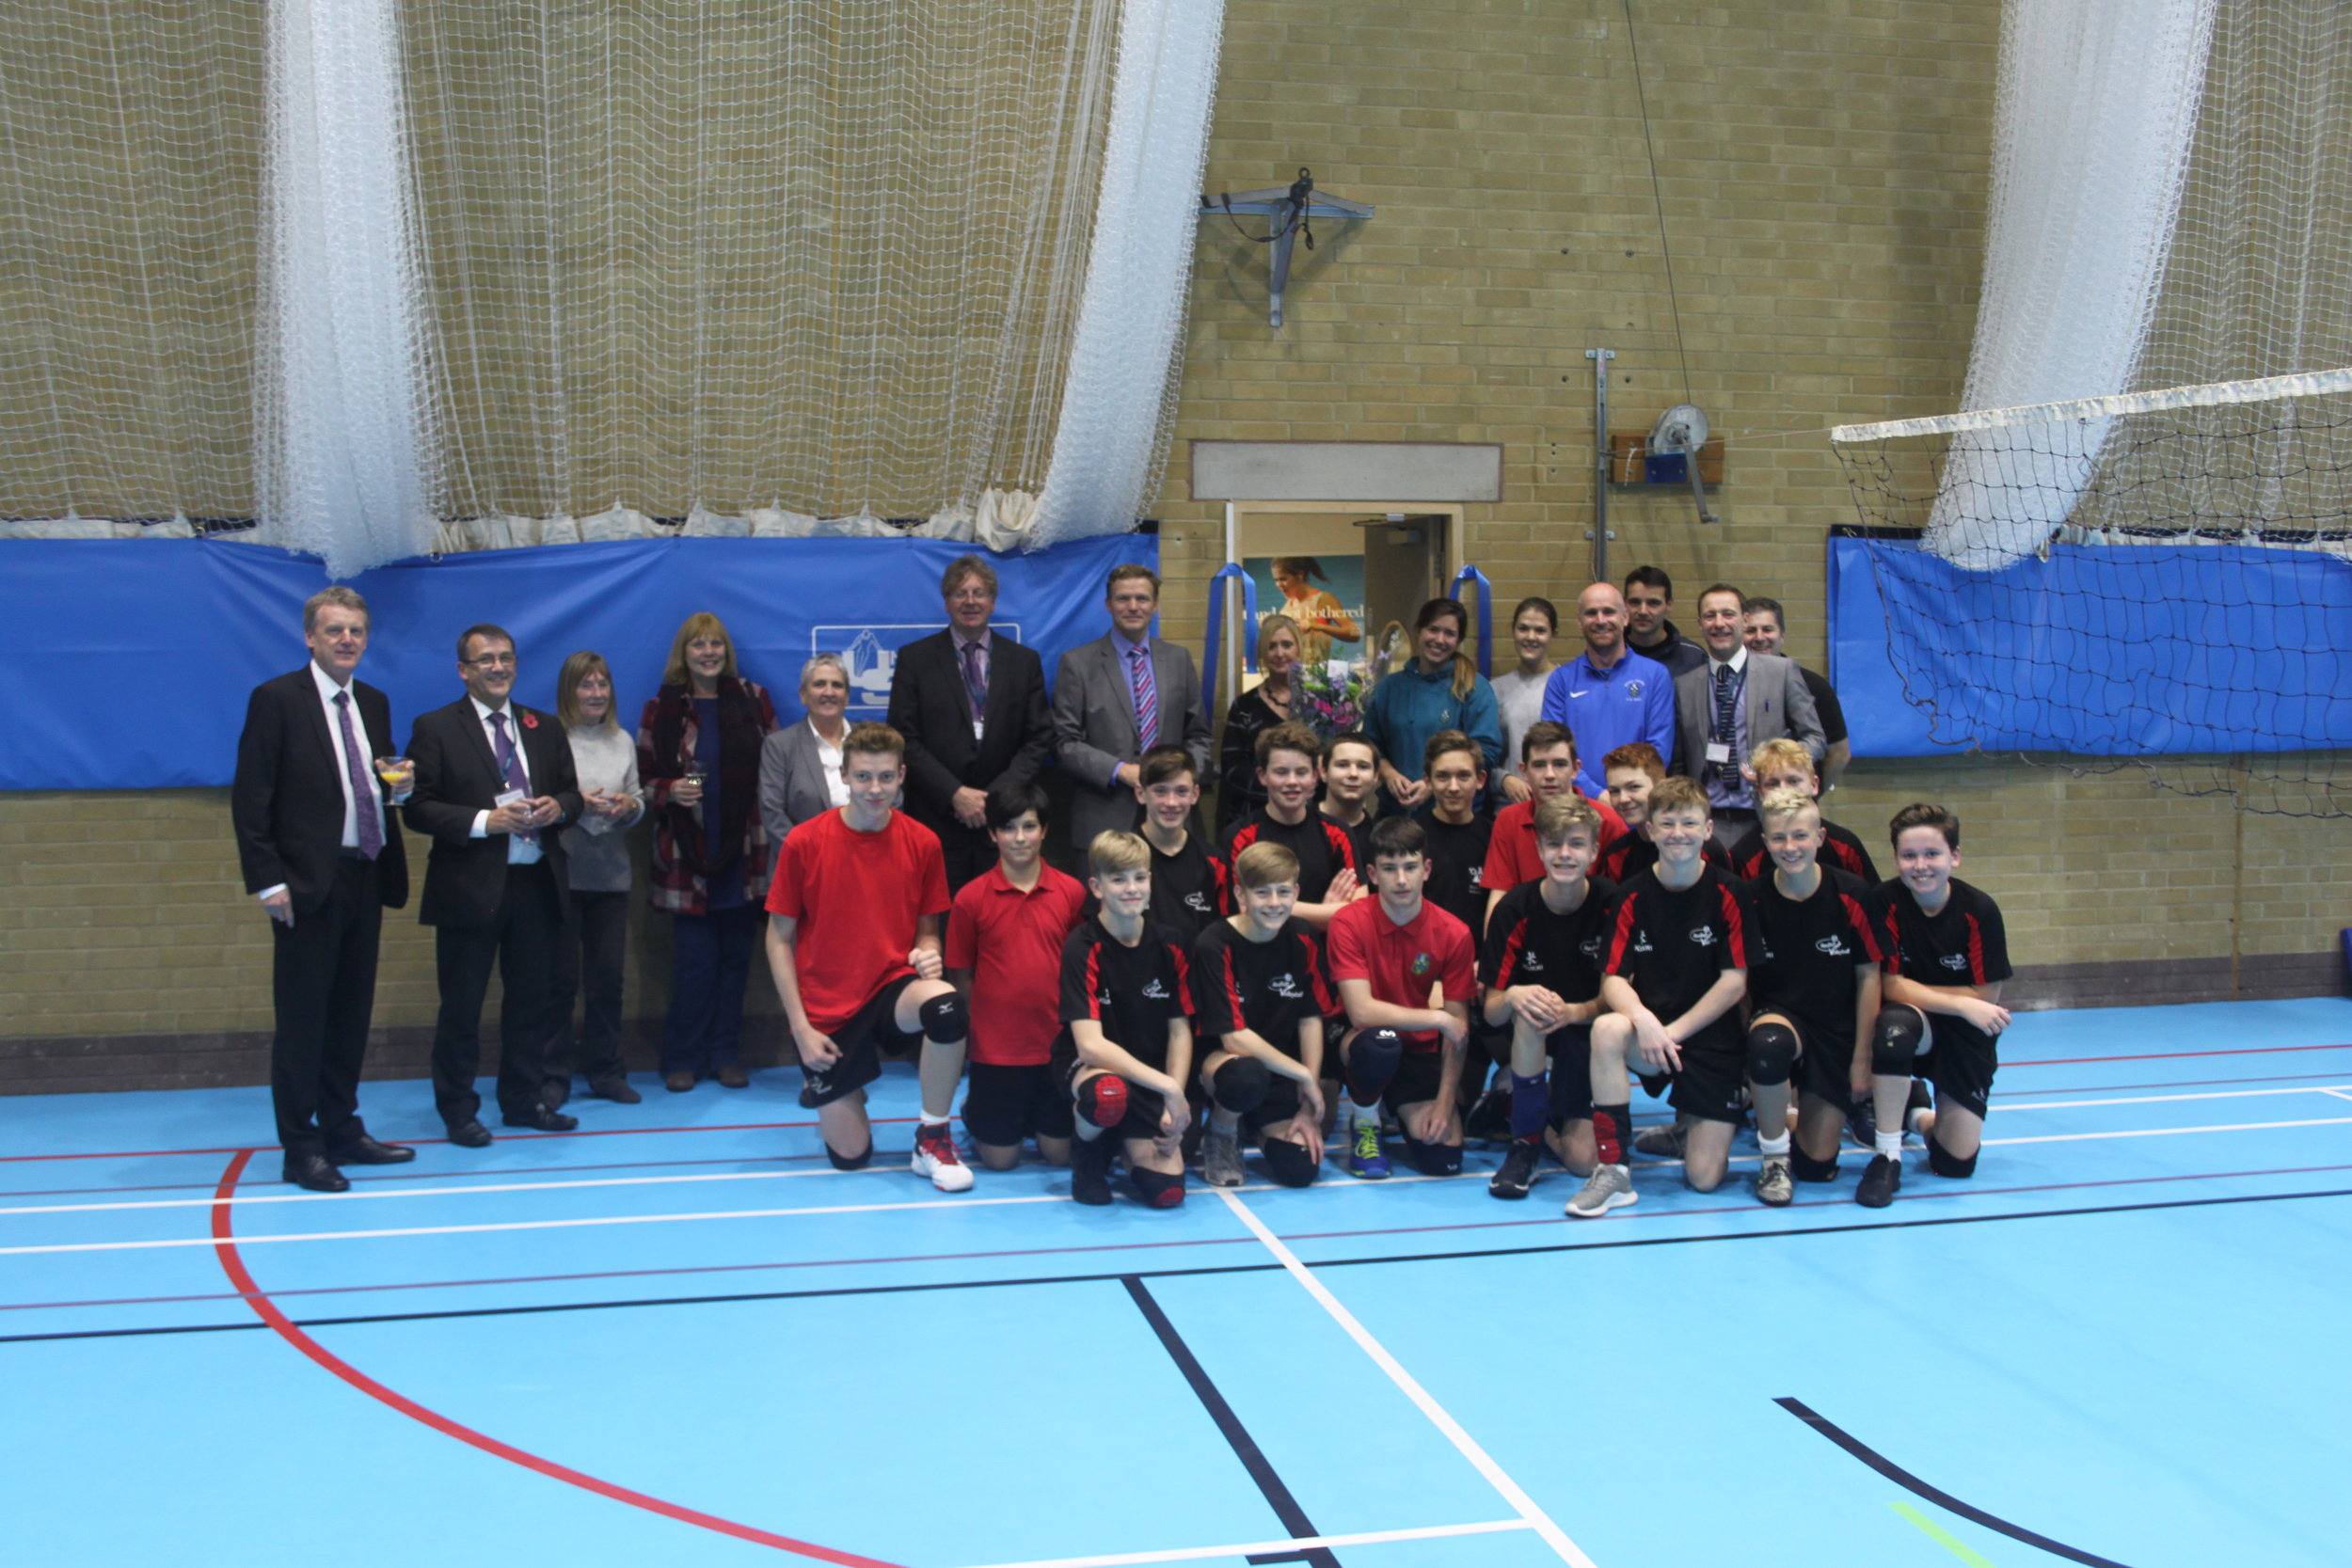 The opening of our new sports hall